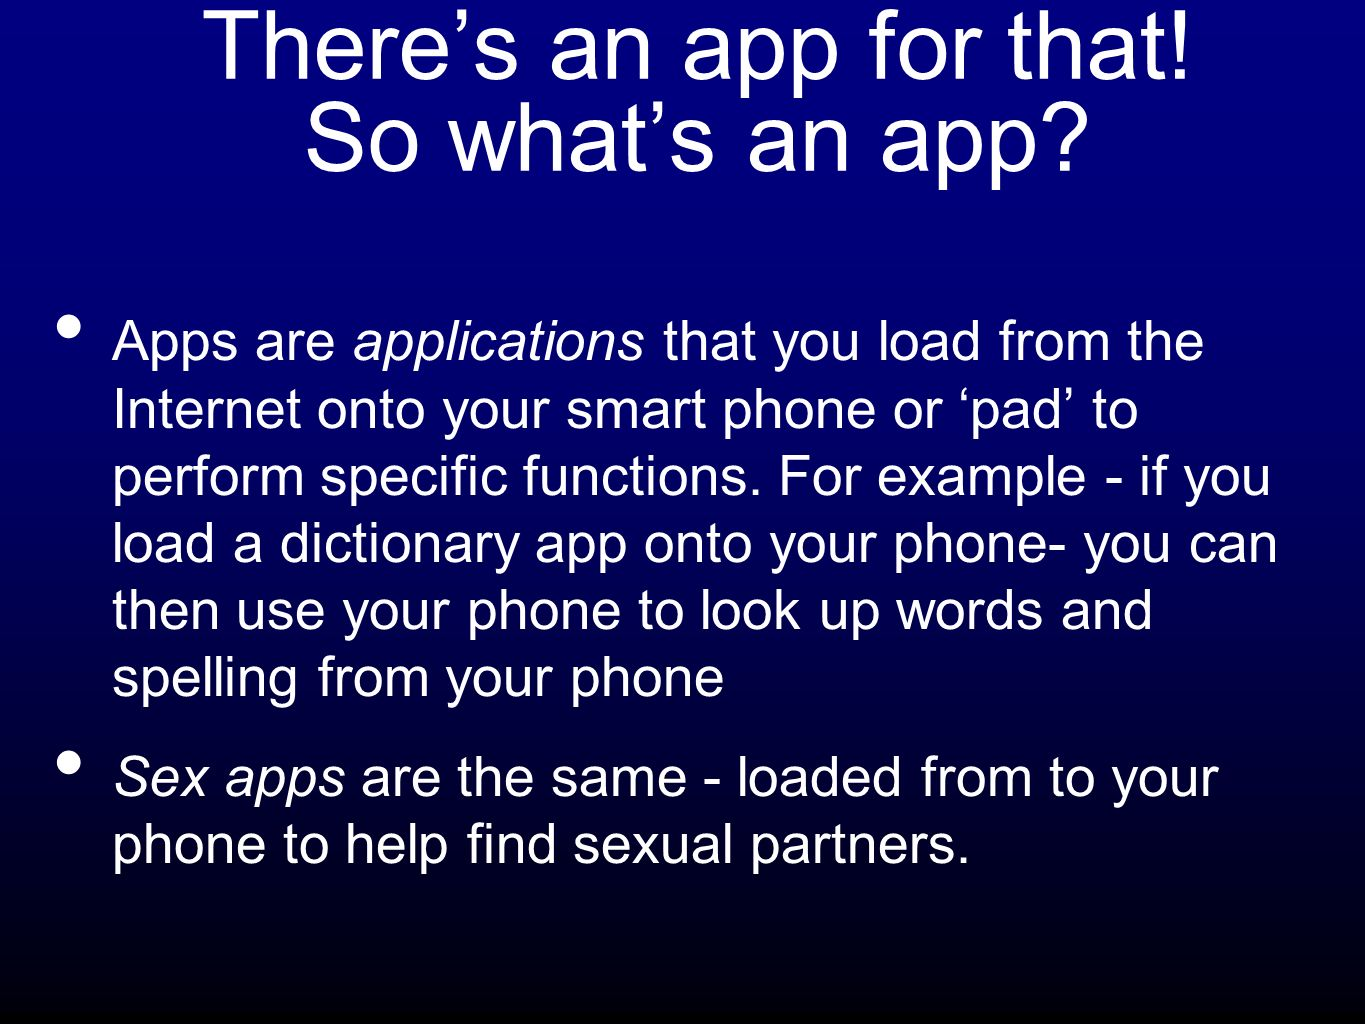 There's an app for that! So what's an app